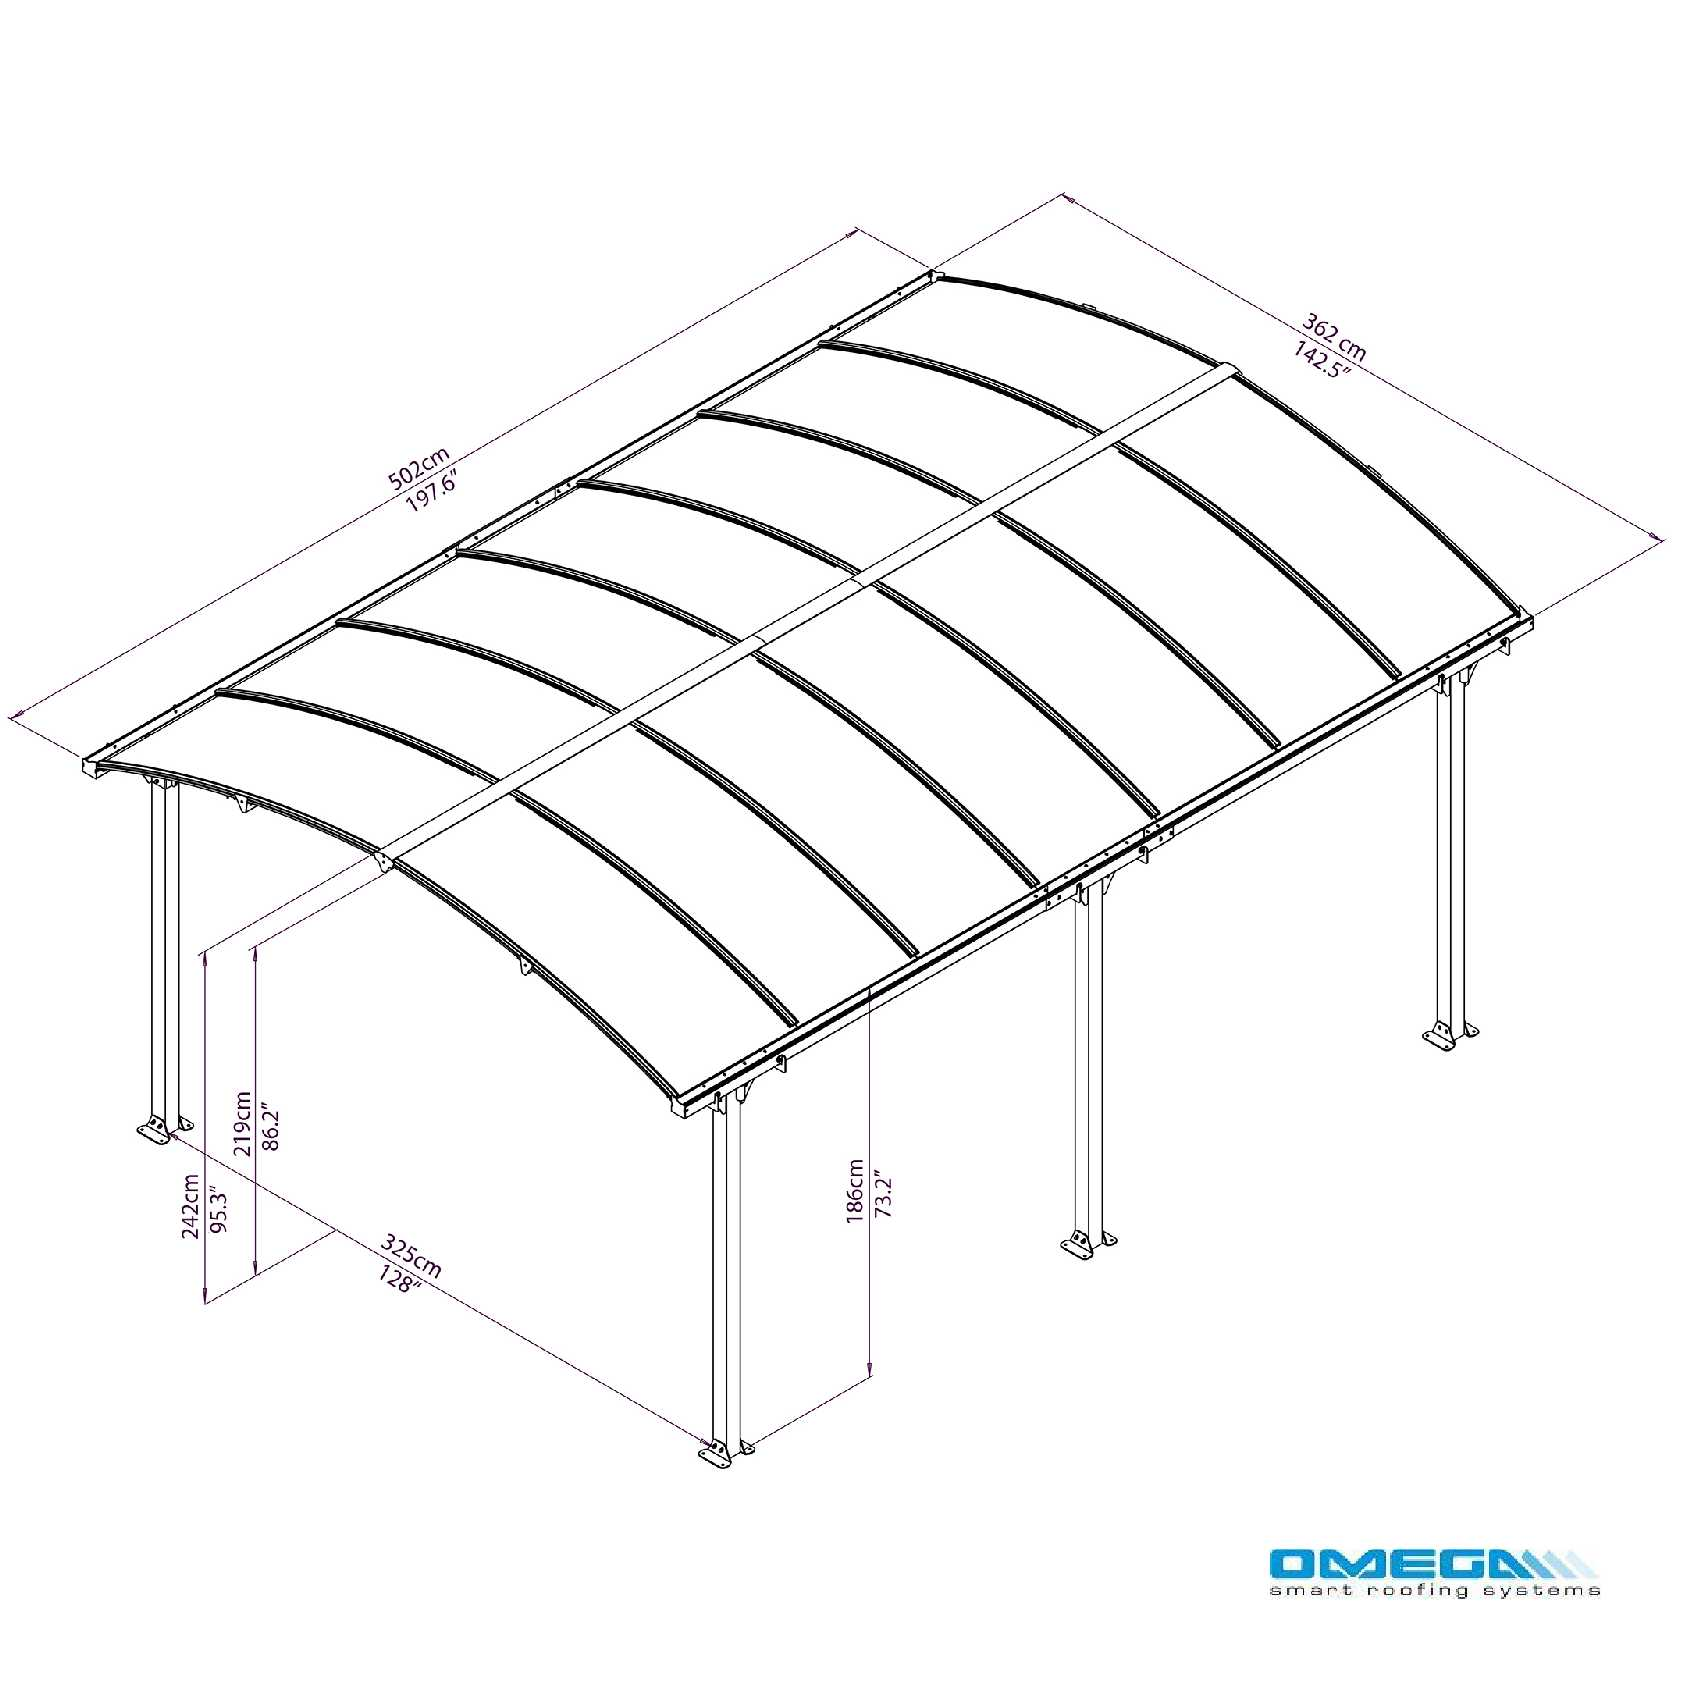 Buy Arcadia 5000 Curved Freestanding canopy 5020 x 3620mm online today